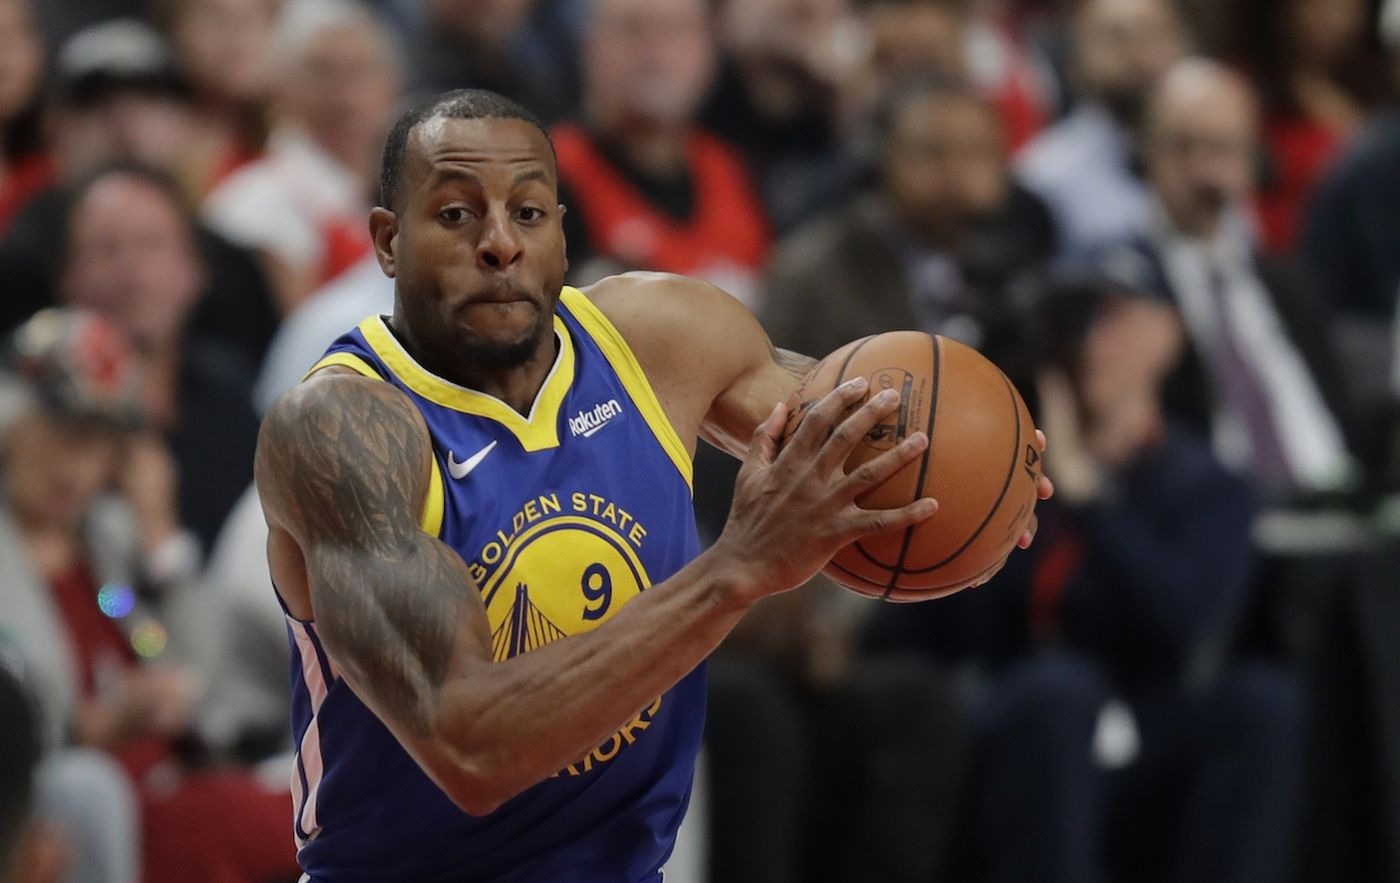 Andre Iguodala of Warriors traded off to Memphis Grizzlies